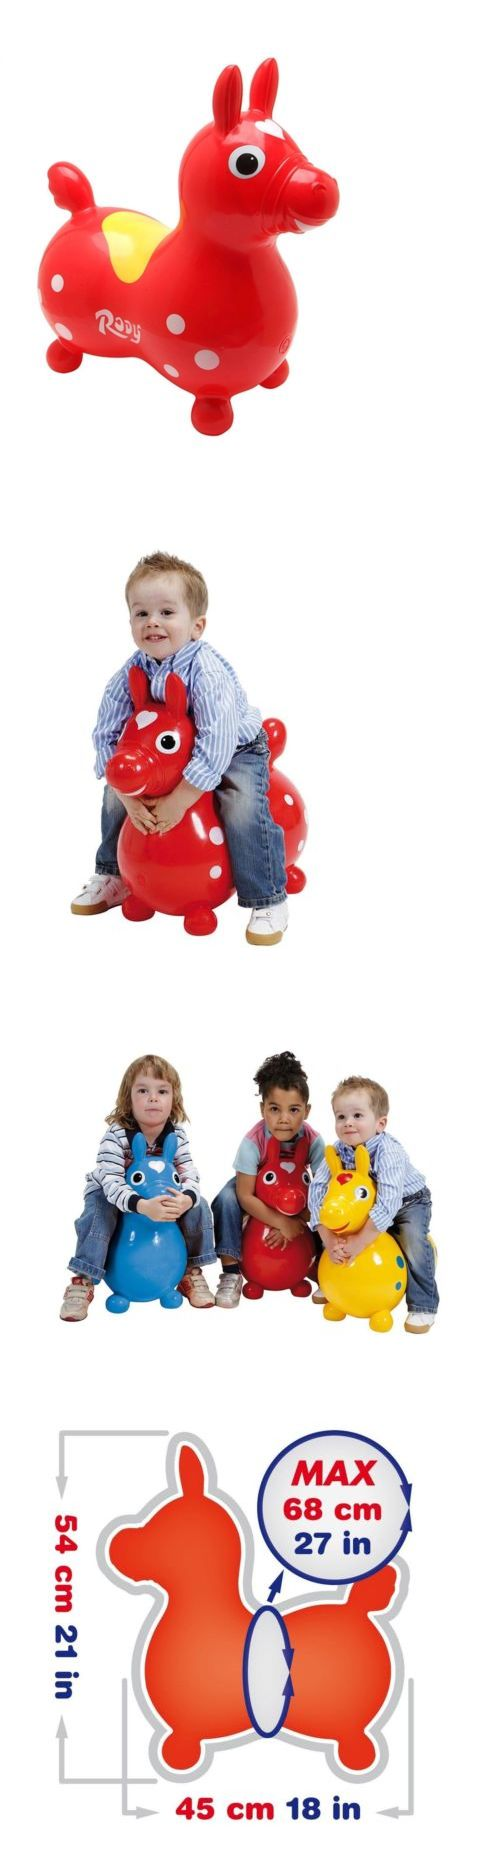 Rocking Horses 19024: Gymnic 8002 Rody Horse Ride On,Red -> BUY IT NOW ONLY: $49.95 on eBay!